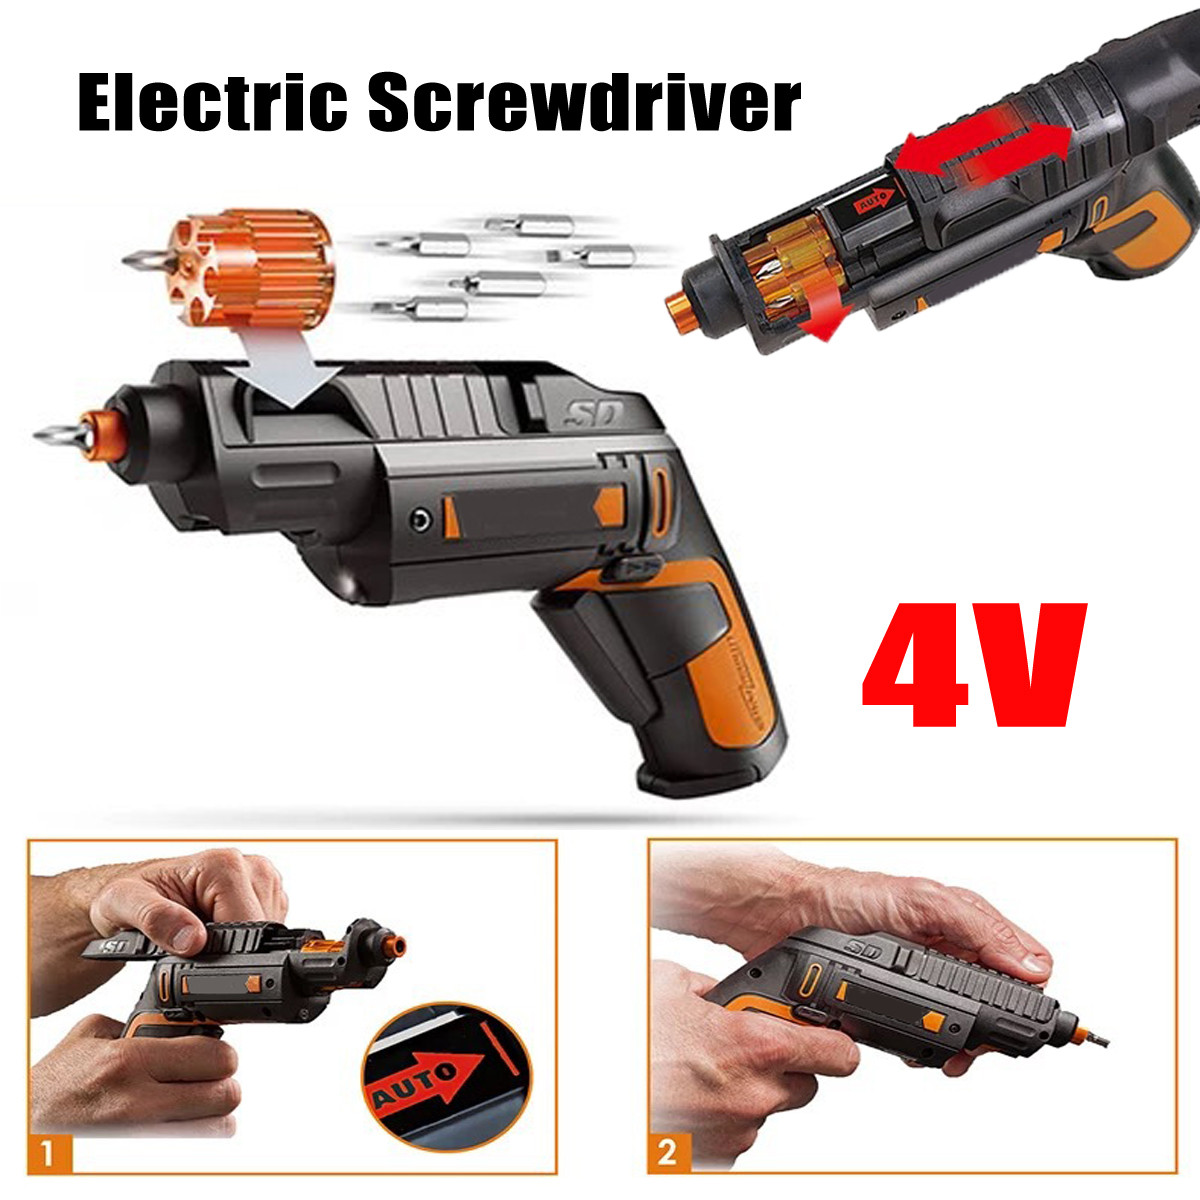 все цены на Electric Screwdriver 4V With Li-Ion Battery Rechargeable Cordless Household Multifunction For WORX Electric Drill Hand Tool онлайн